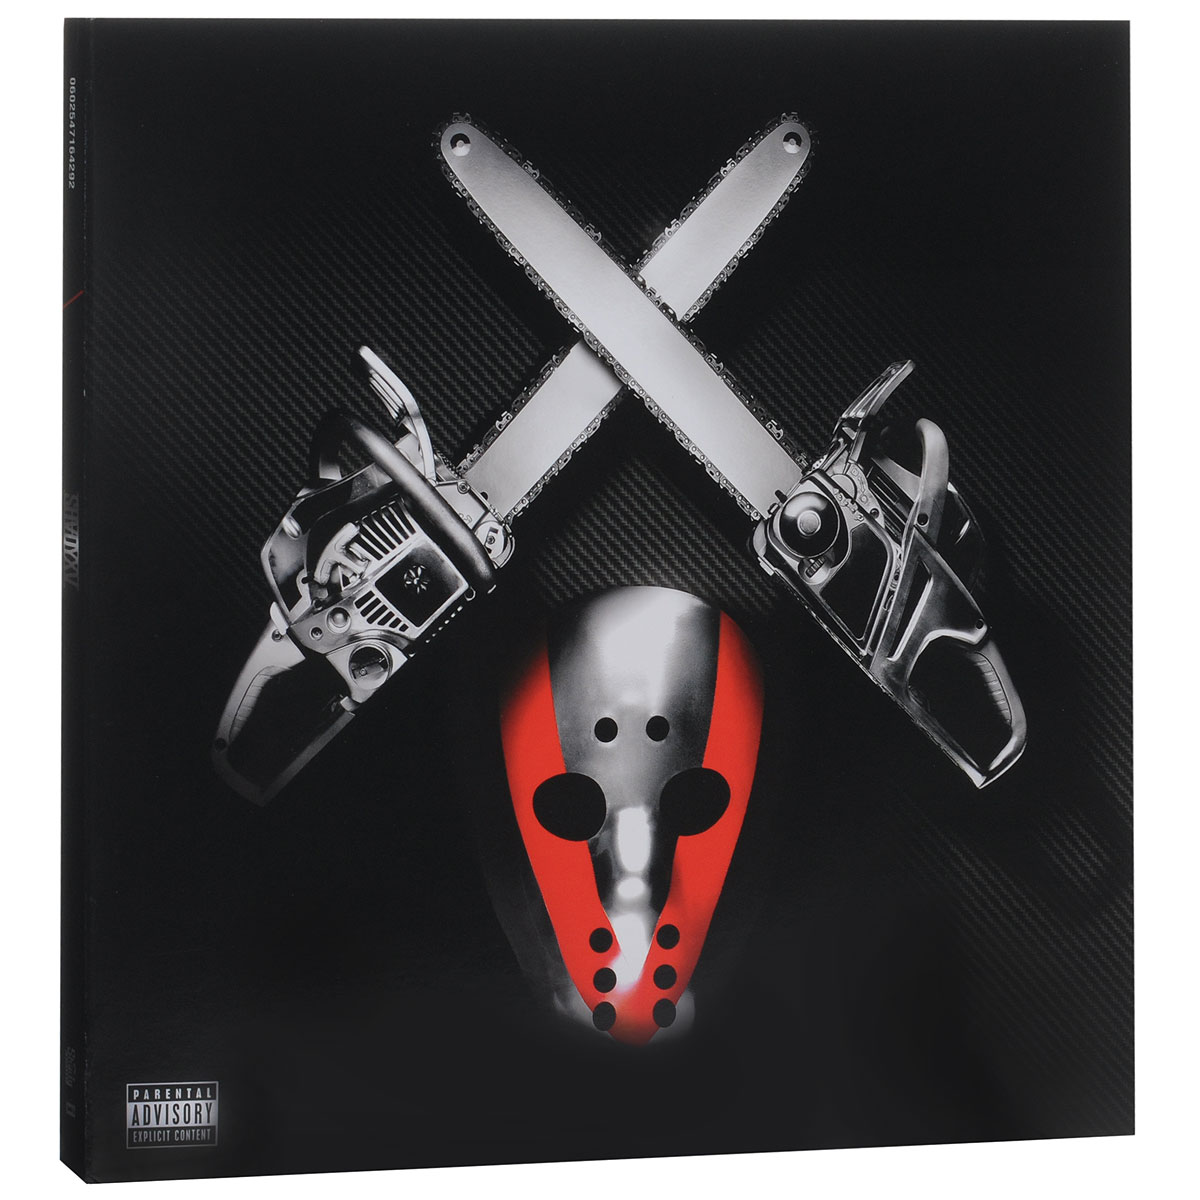 Эминем,Slaughterhouse,Kobe,Bad Meets Evil,Sia,Yelawolf,D-12,Skylar Grey,50 Cent,Obie Trice Eminem. ShadyXV (4 LP) signed kobe bryant autographed original photo 7 inches free shipping 08201709